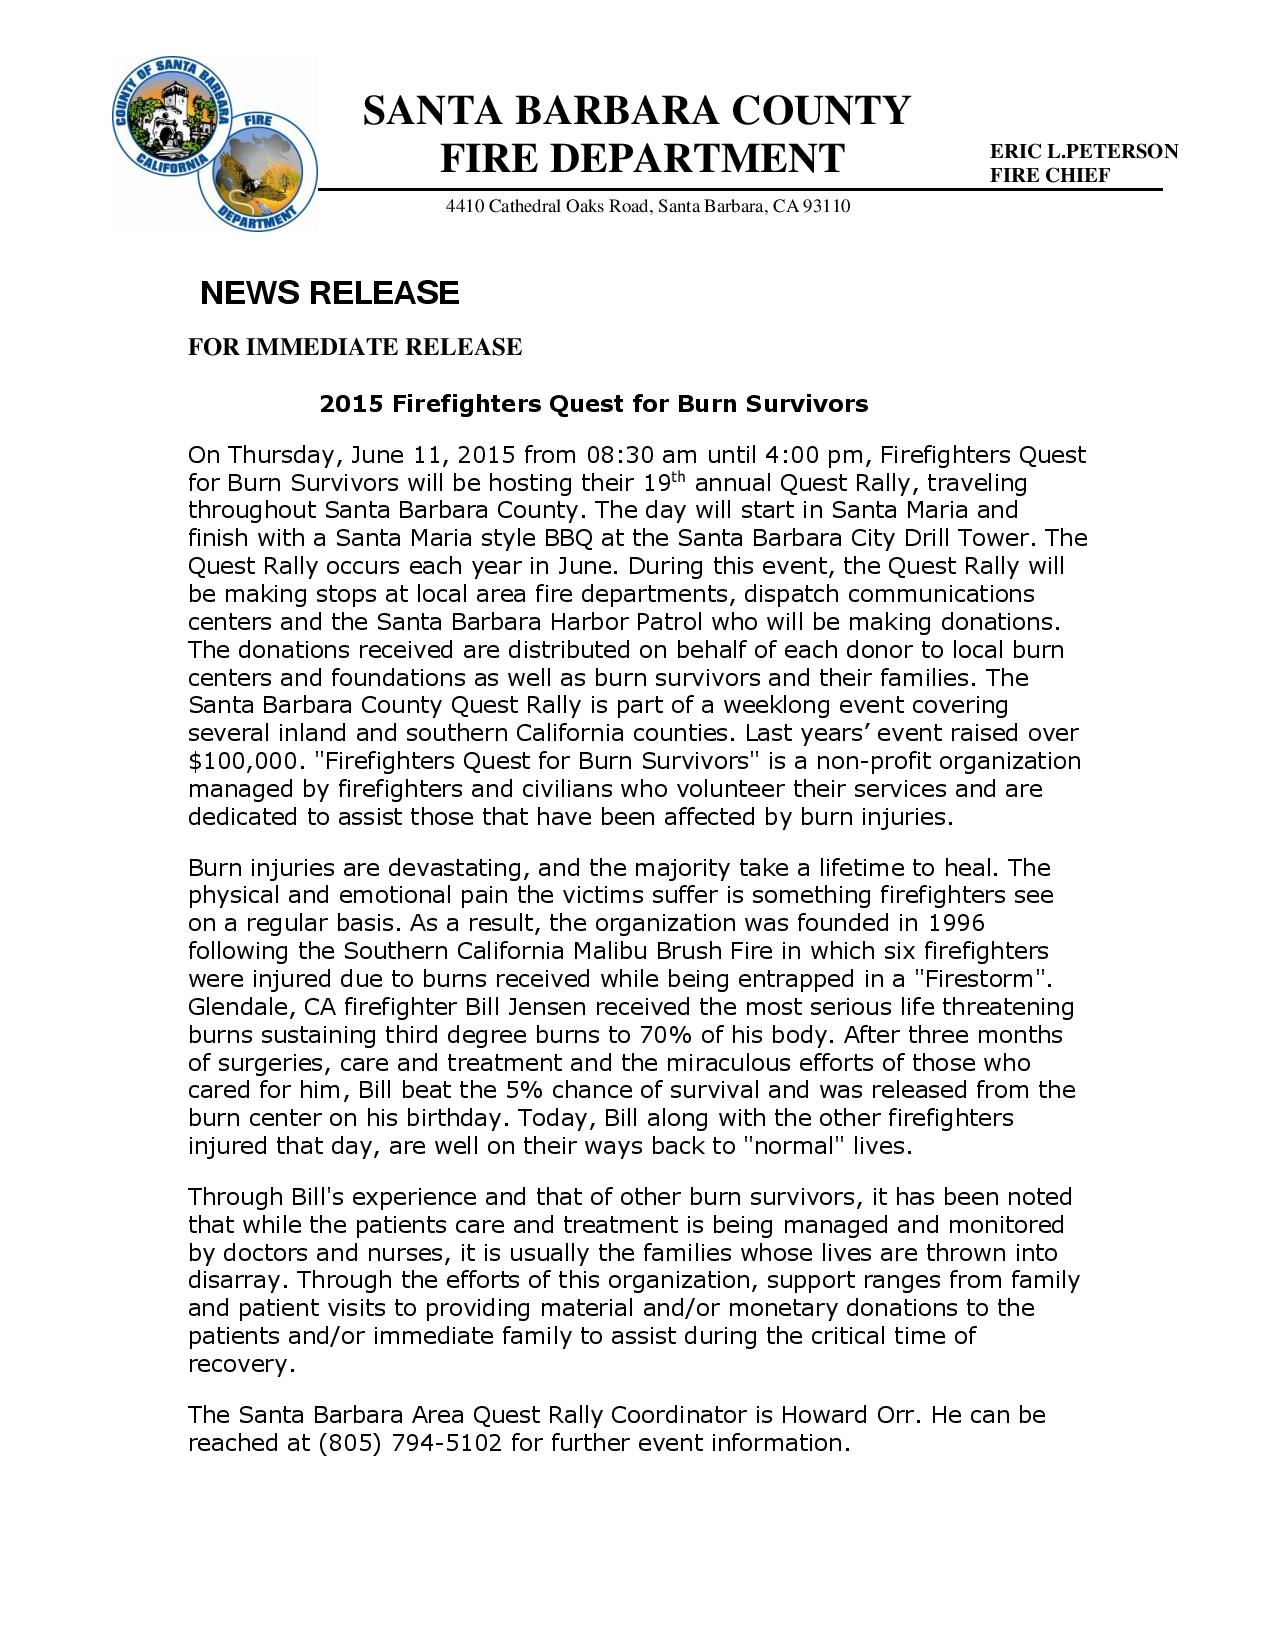 Firefighters Quest for Burn Survivors-pg1